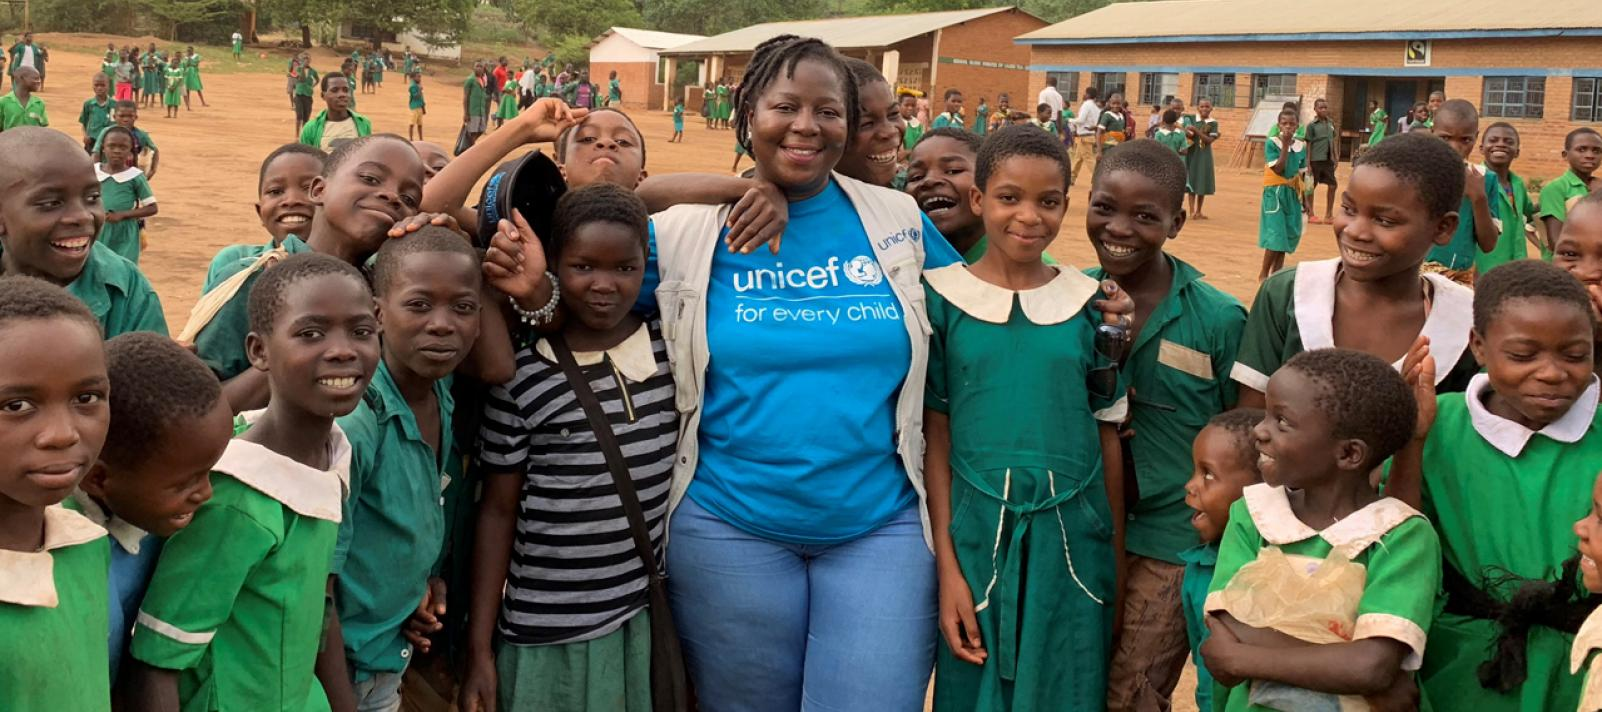 UNICEF Education Specialist with students at Ngangala Primary School in Mulanje